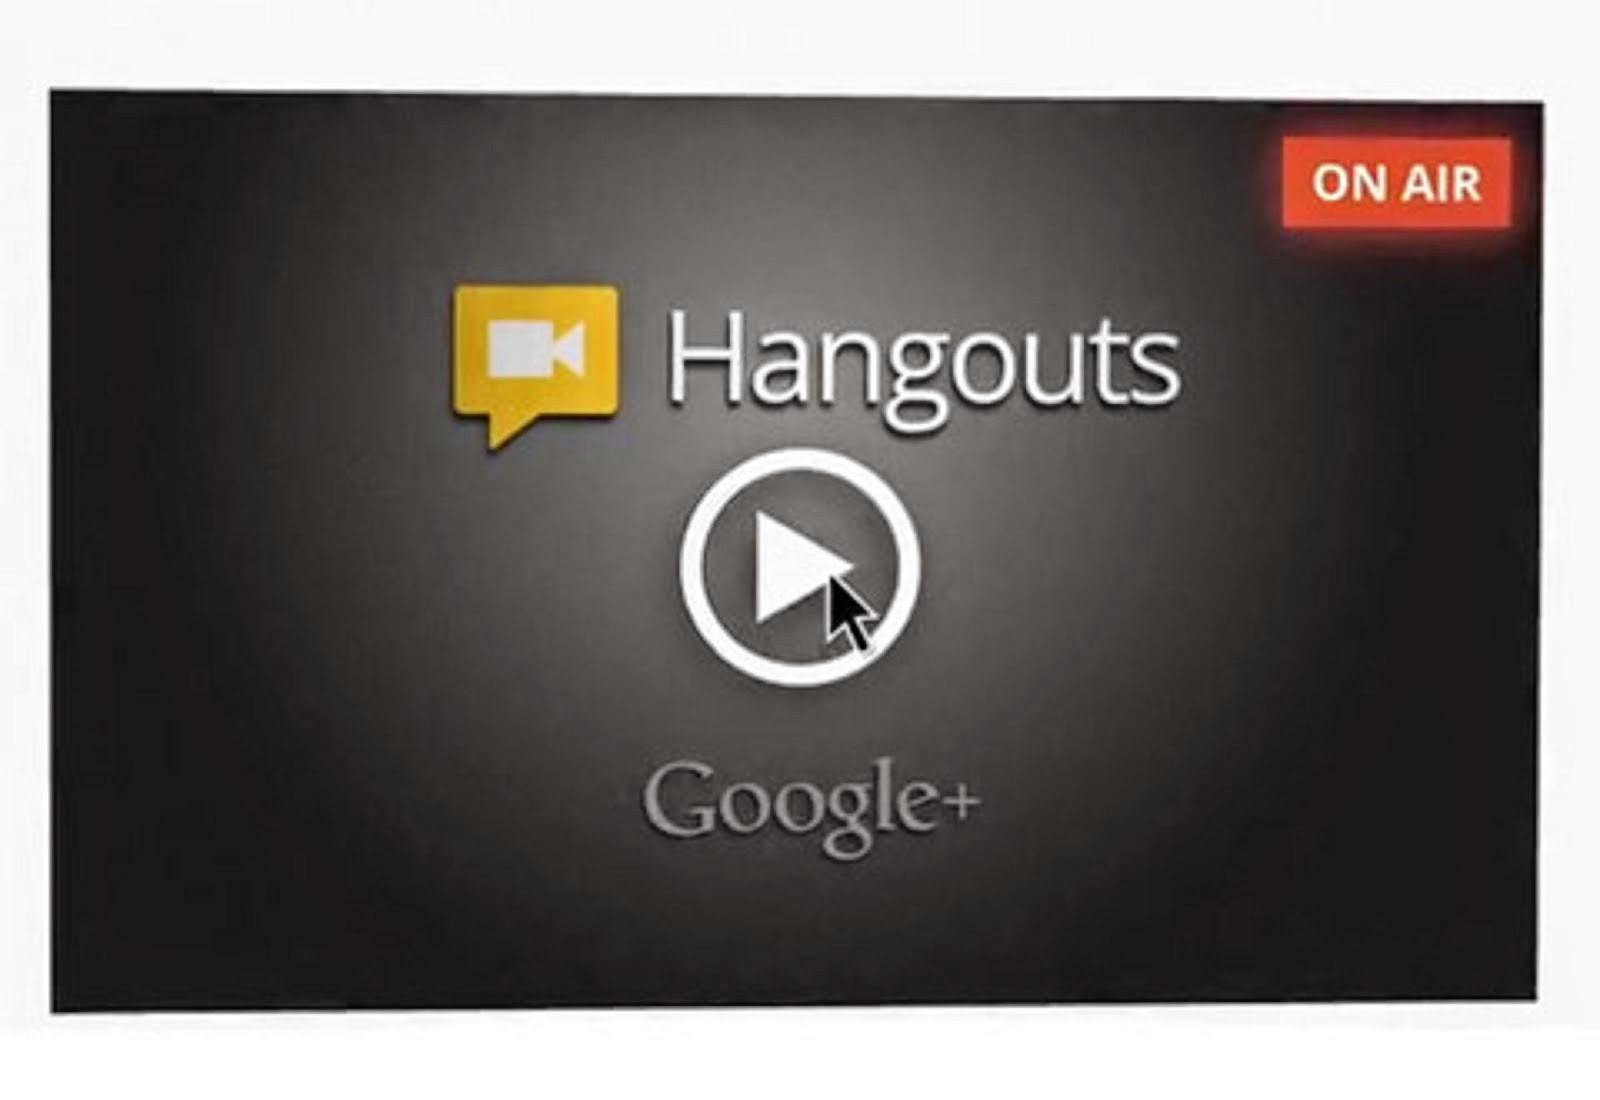 GOOGLE+ HANGOUTS - ON AIR